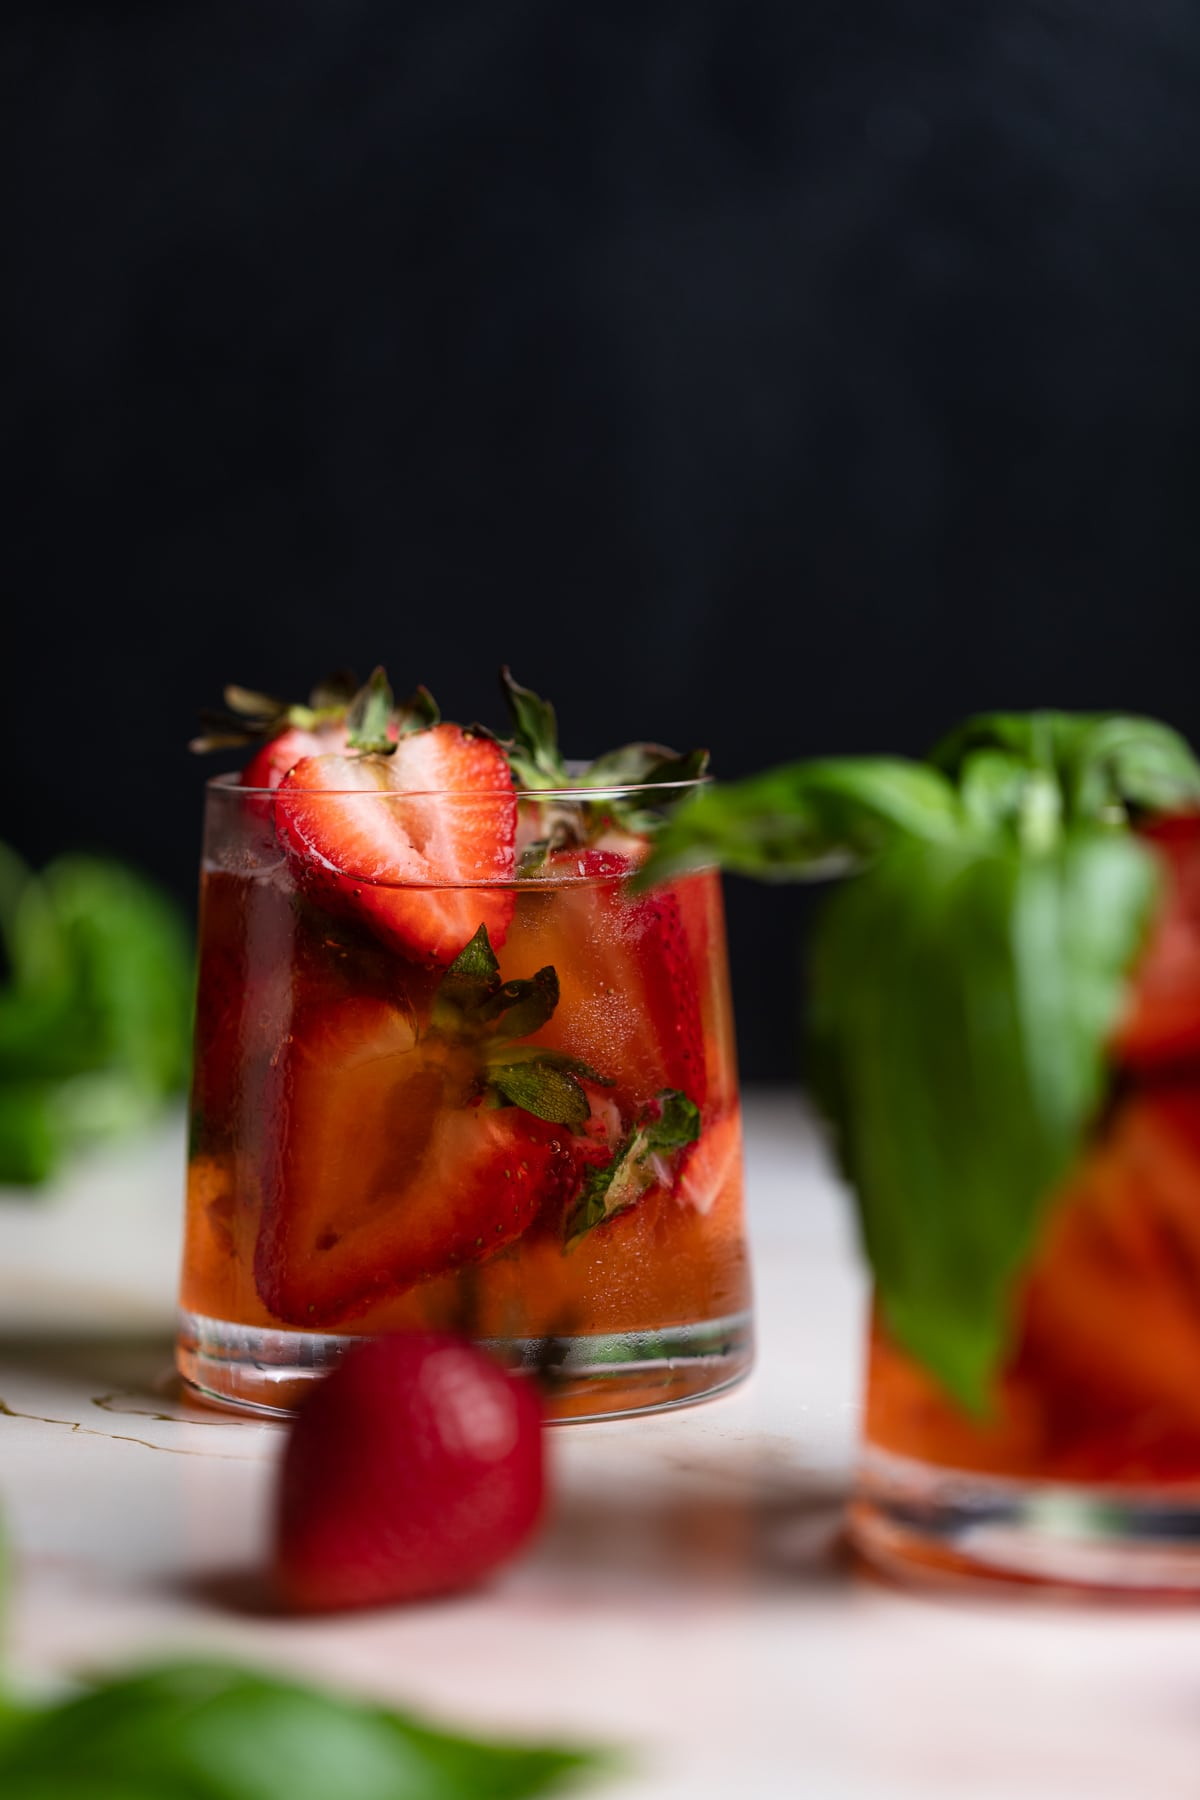 Strawberry Basil Pineapple Mocktail in a glass with fresh strawberries and basil